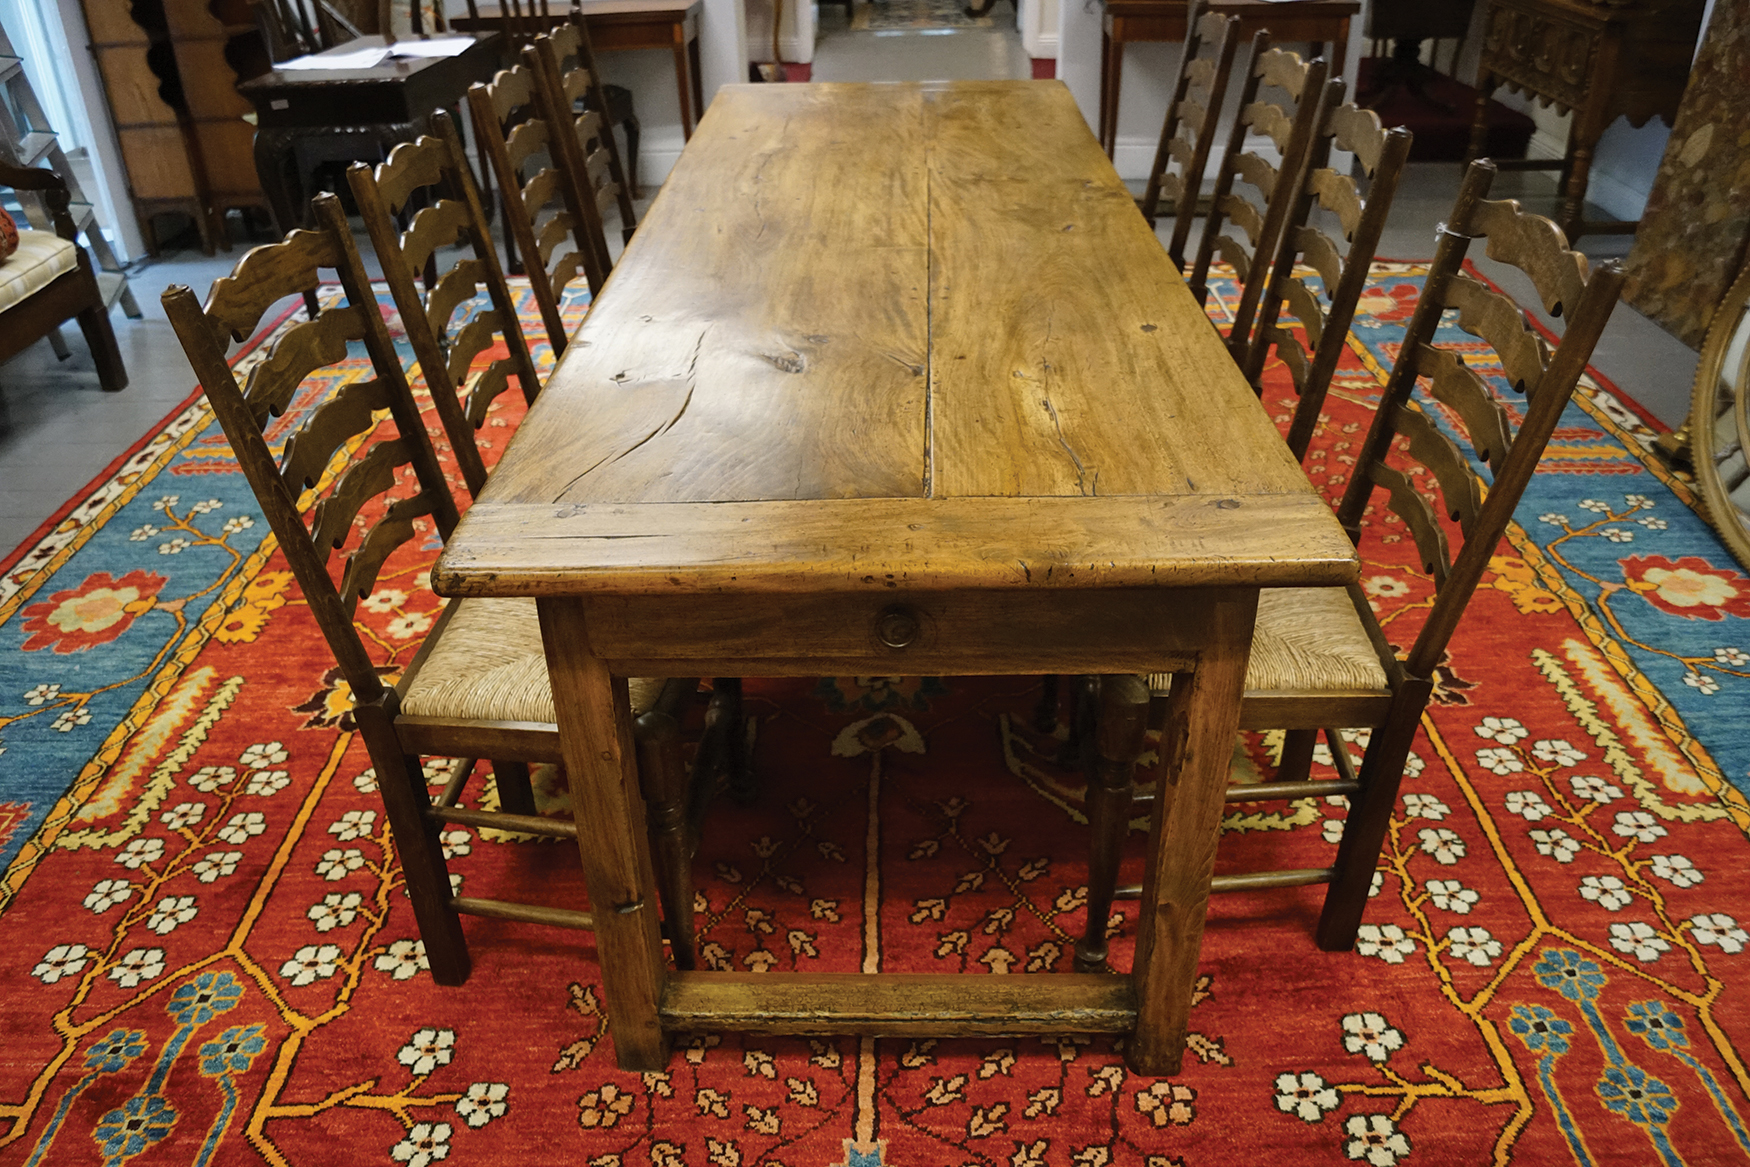 Lot 371 - LARGE 19TH-CENTURY FARMHOUSE TABLE